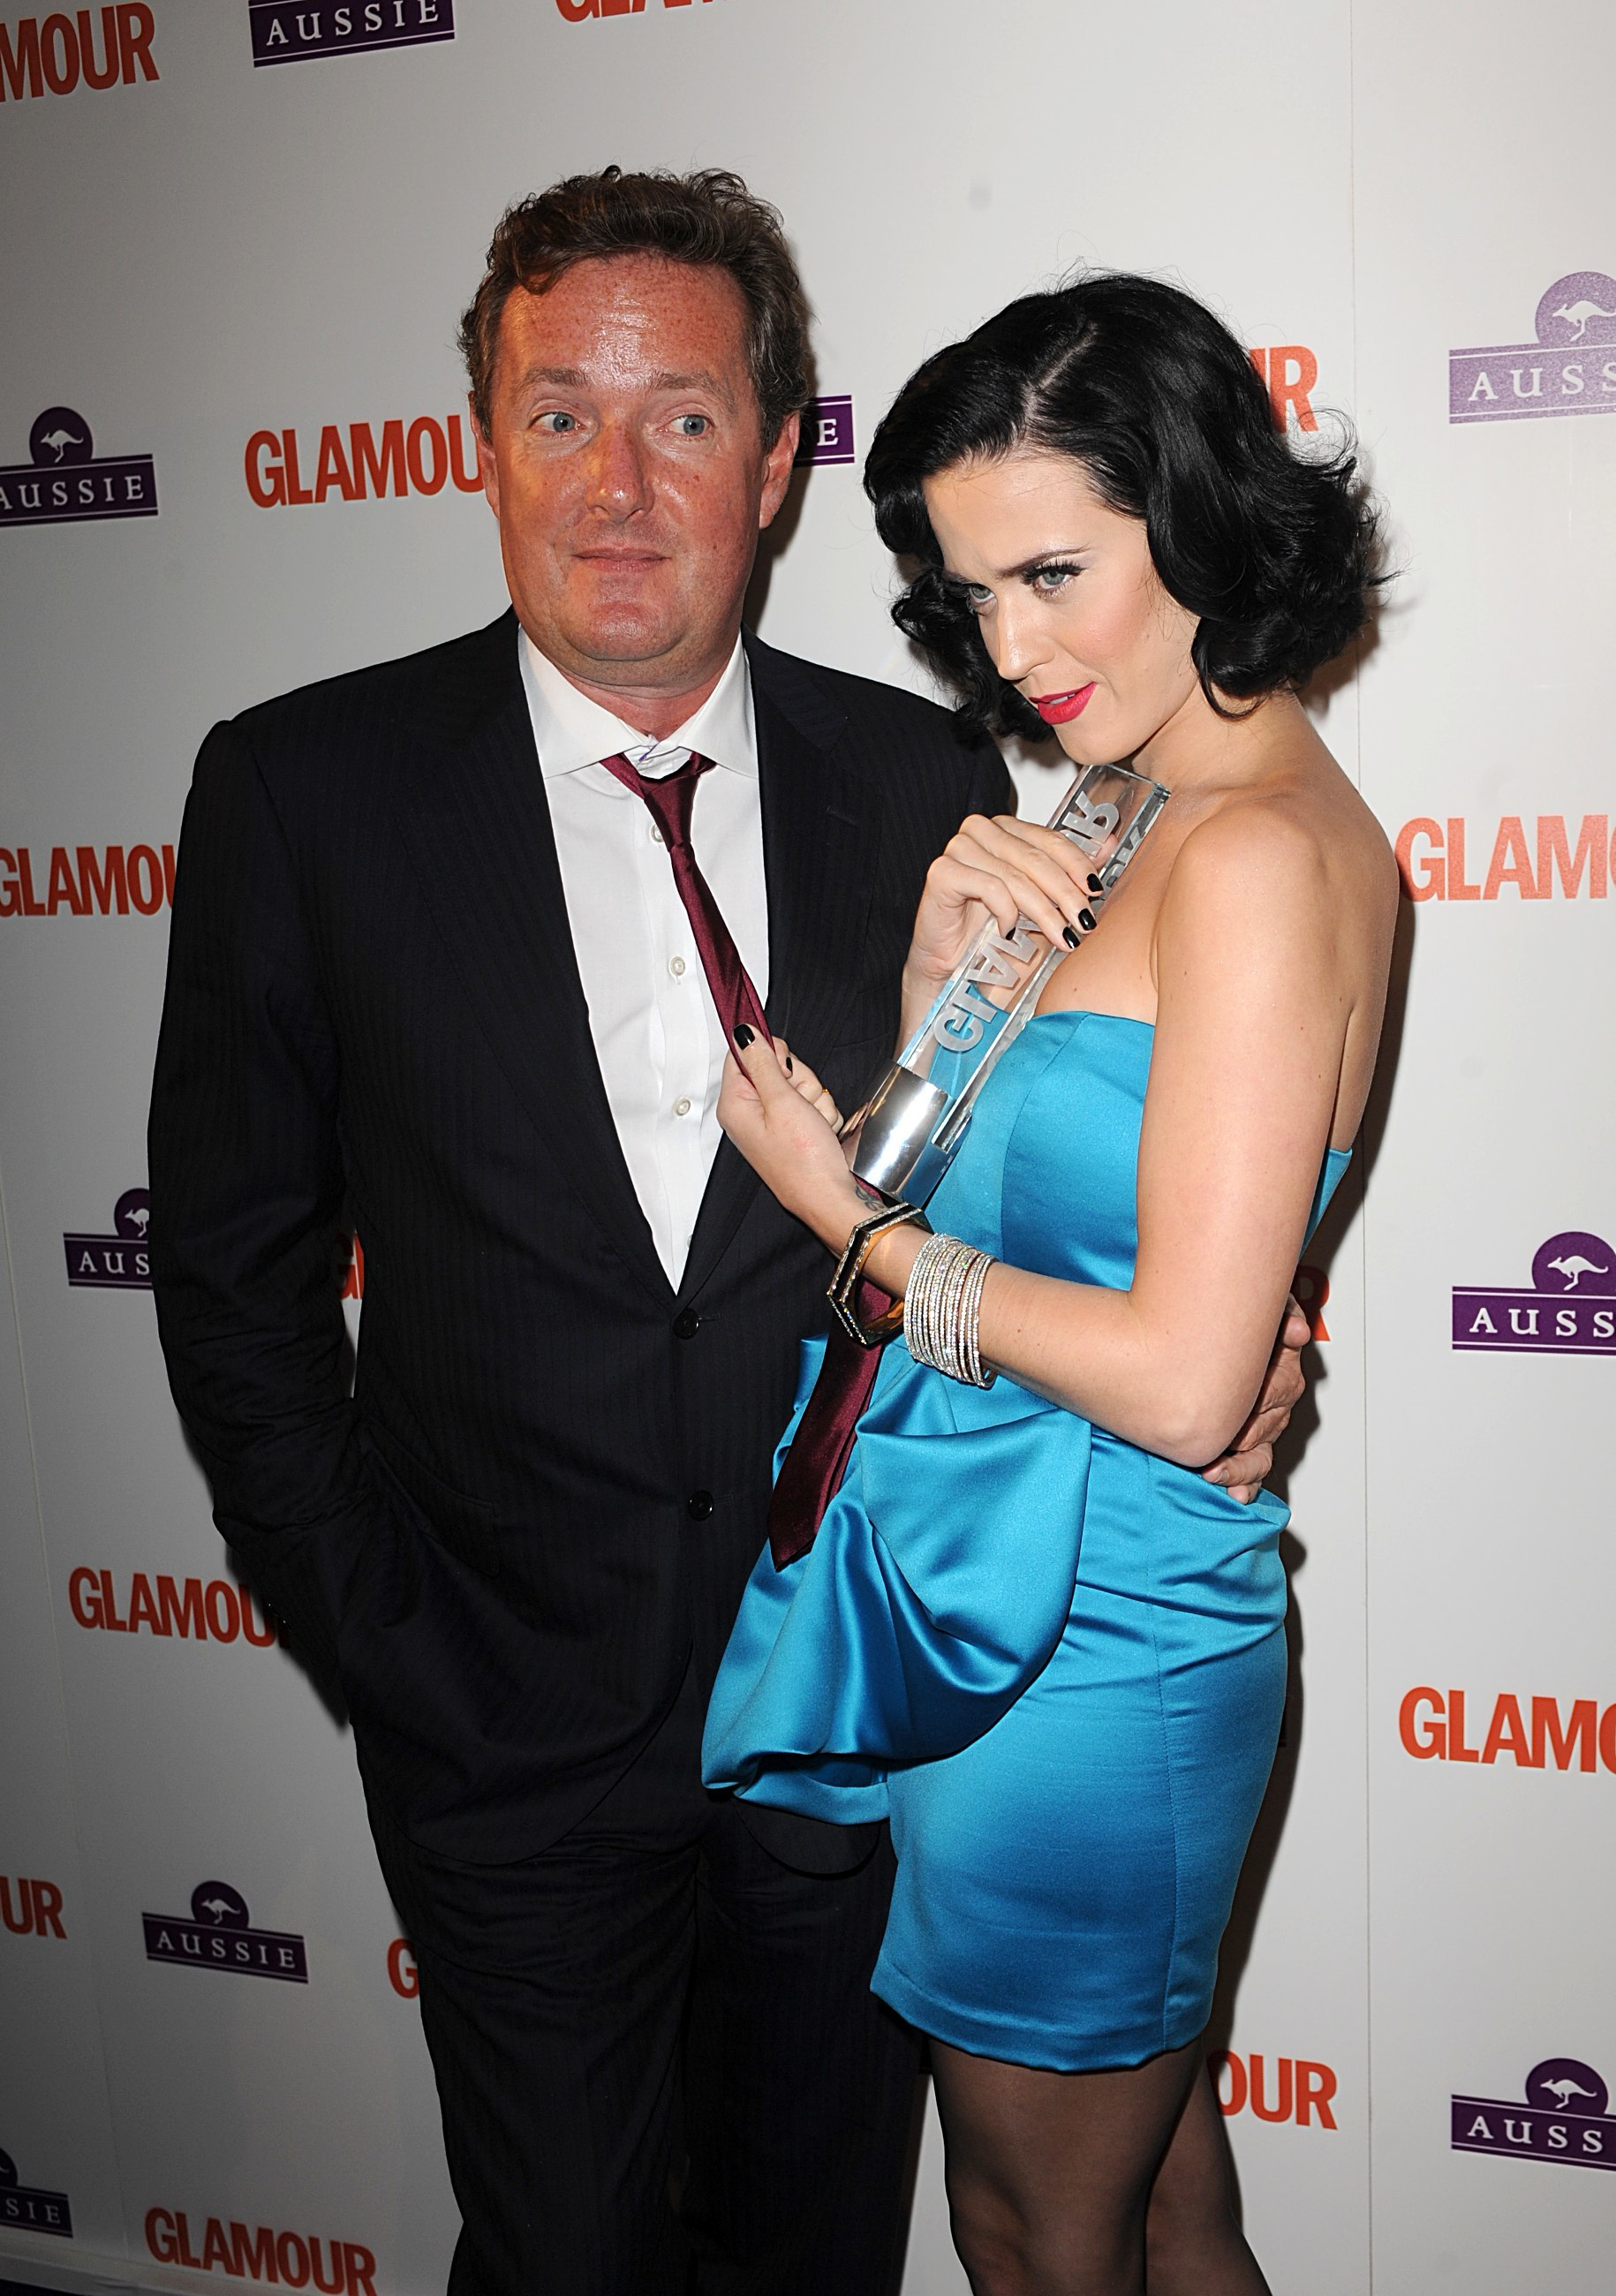 Katy Perry with the award for Aussie Hare Care Newcomer and Piers Morgan, at the Glamour Woman of the Year Awards 2009, at Berkeley Square Gardens, W1